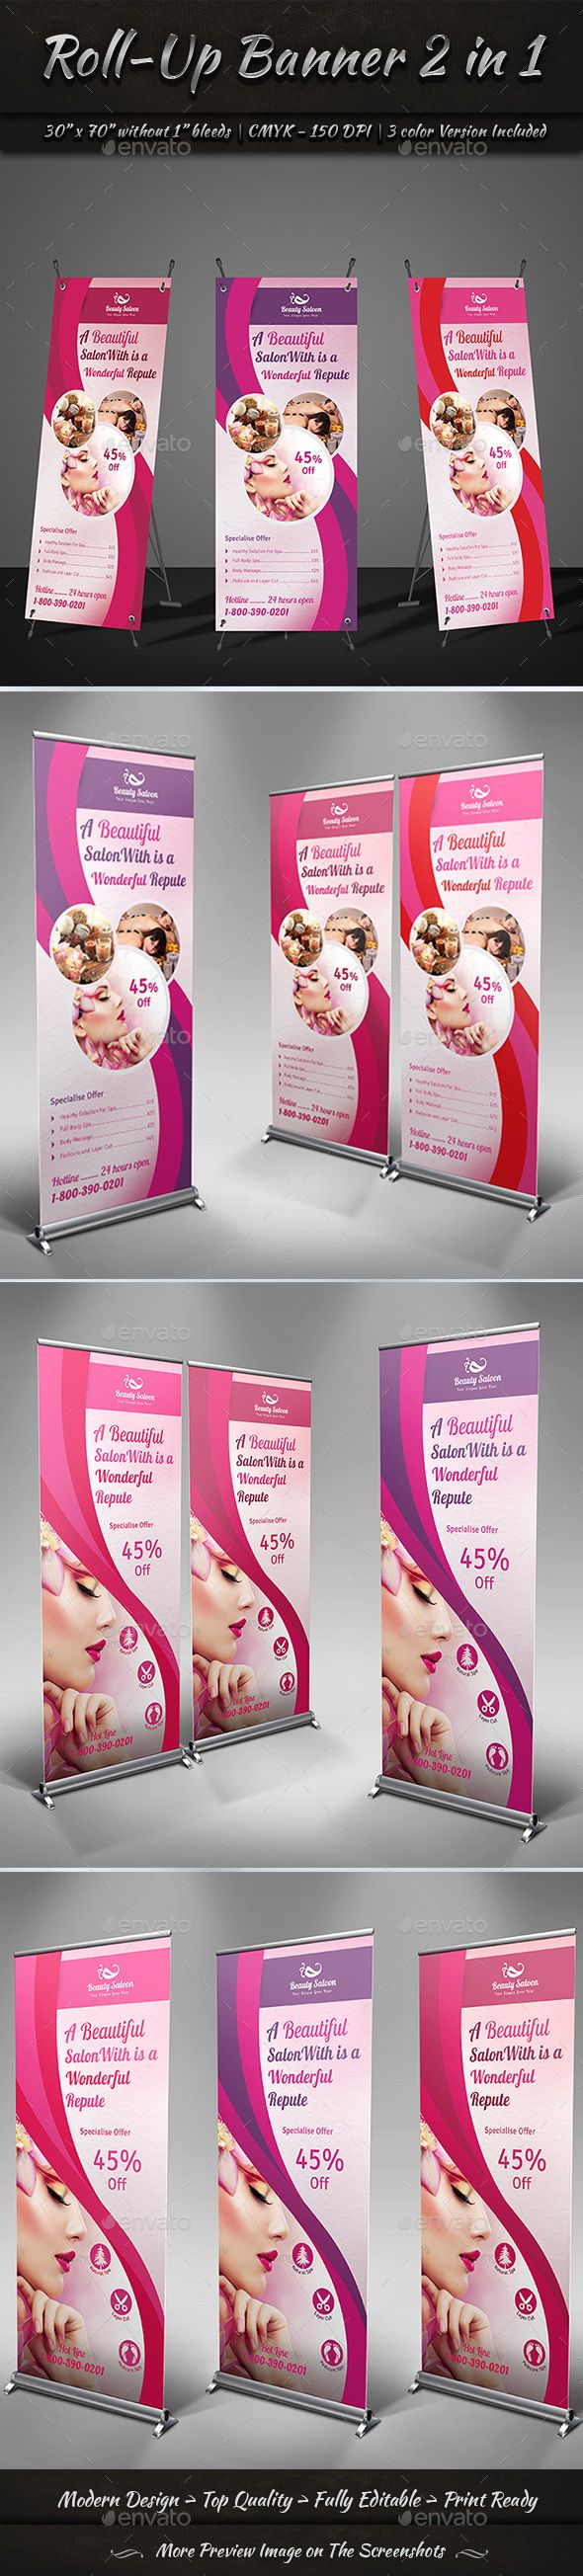 Roll-Up Banner 2 in 1 by GraphicShaper Roll-Up Banner 2 in 1 is a designed for A...